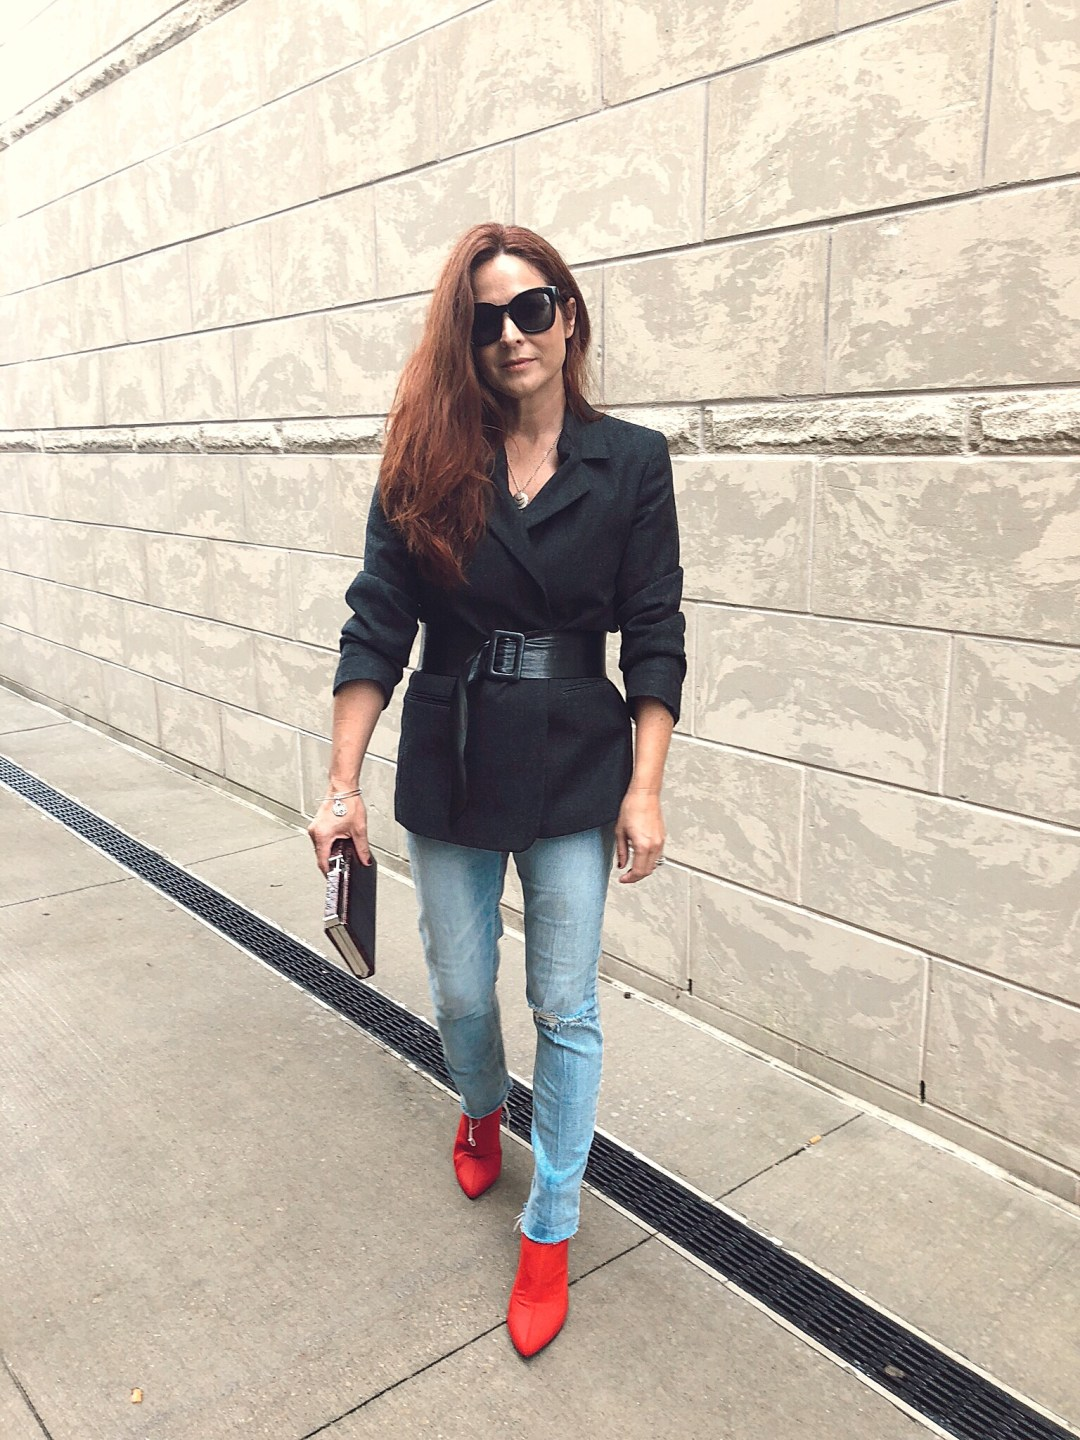 blazers with jeans ideas, red boot outfits, how to add a belt to a jacket, outerwear outfits, distressed jeans, small clutches